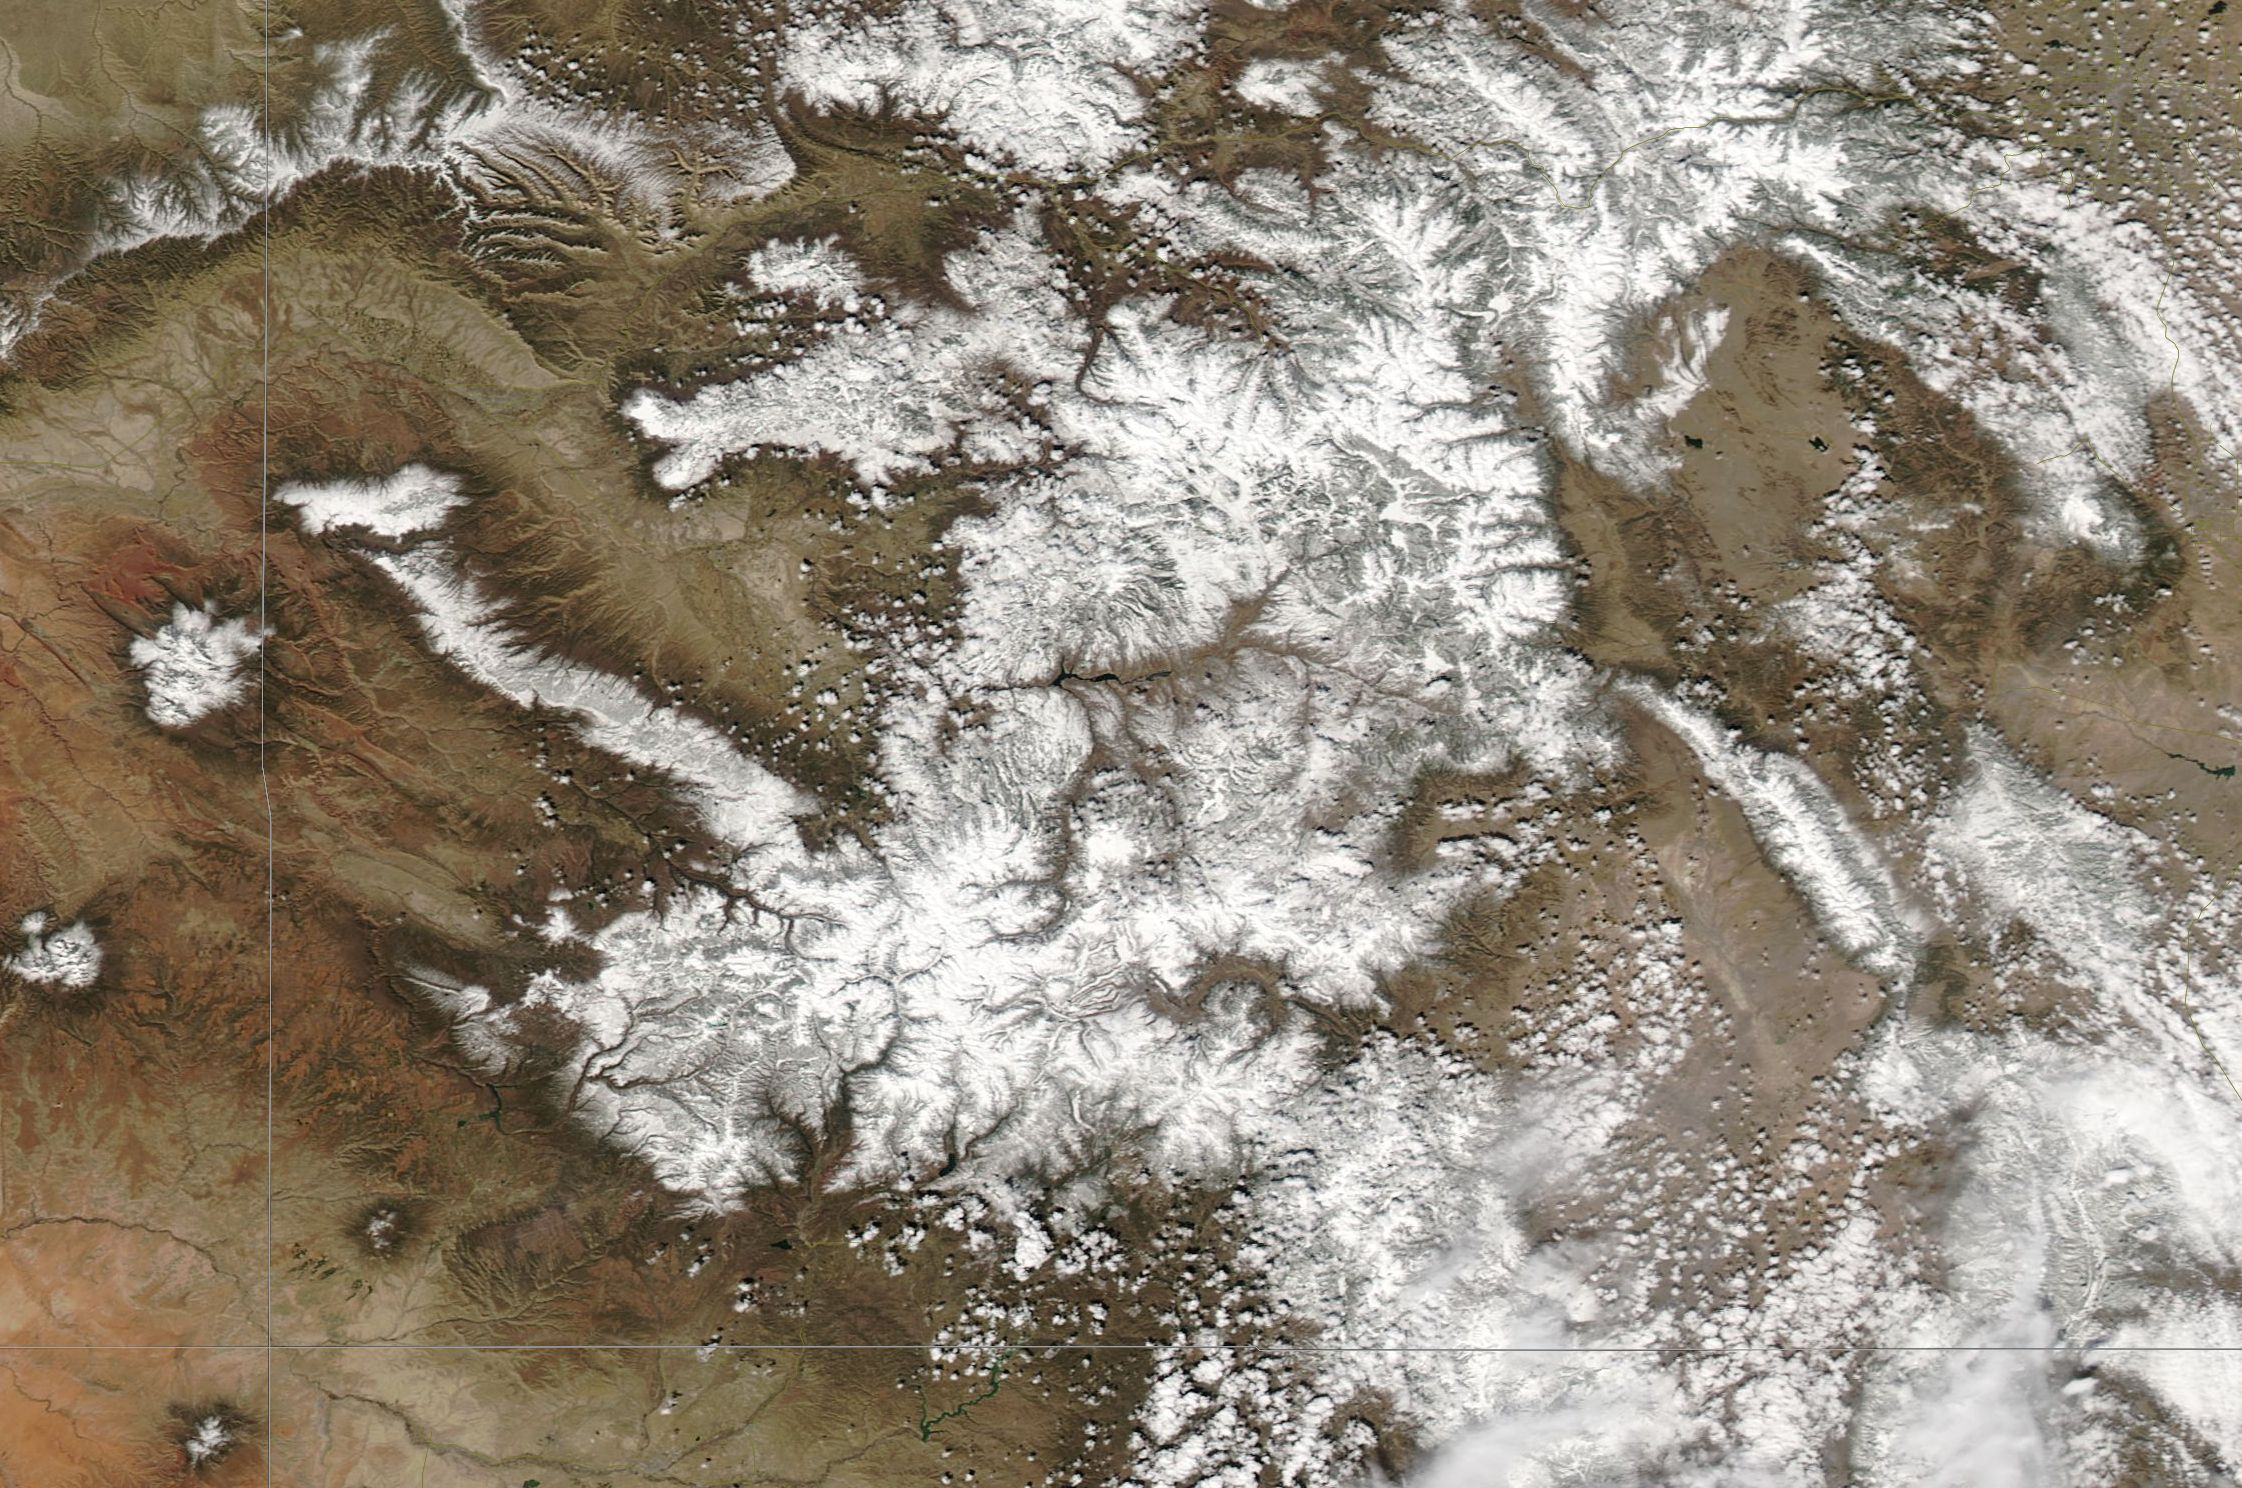 Snow cover in Colorado on March 29, 2017. Following a dry/hot mid-March, lower elevations and valleys experienced a fair bit of snow ablation.